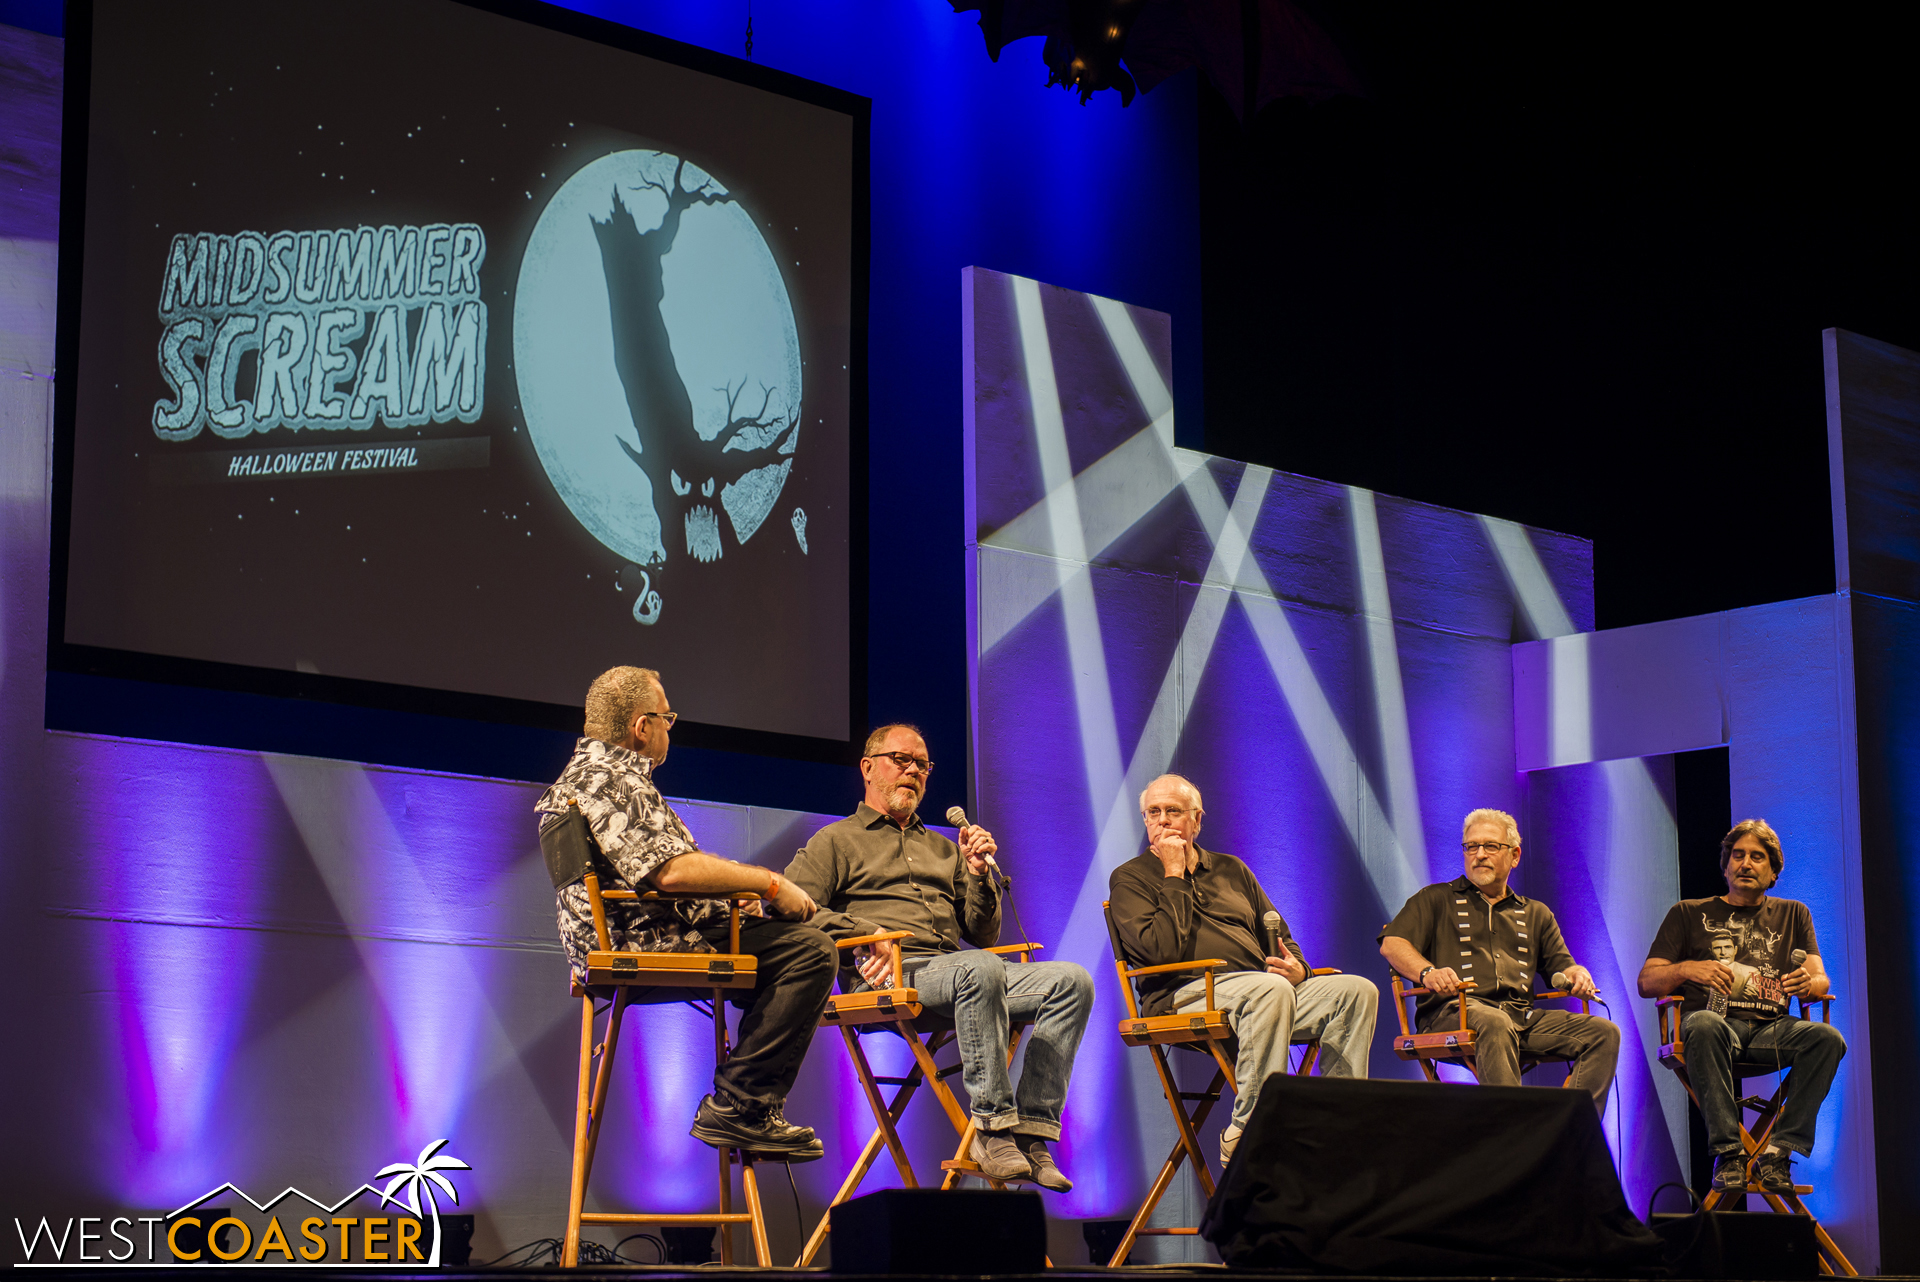 Rick West on the left, with the Imagineers in the middle, and Mark Silverman on the right.